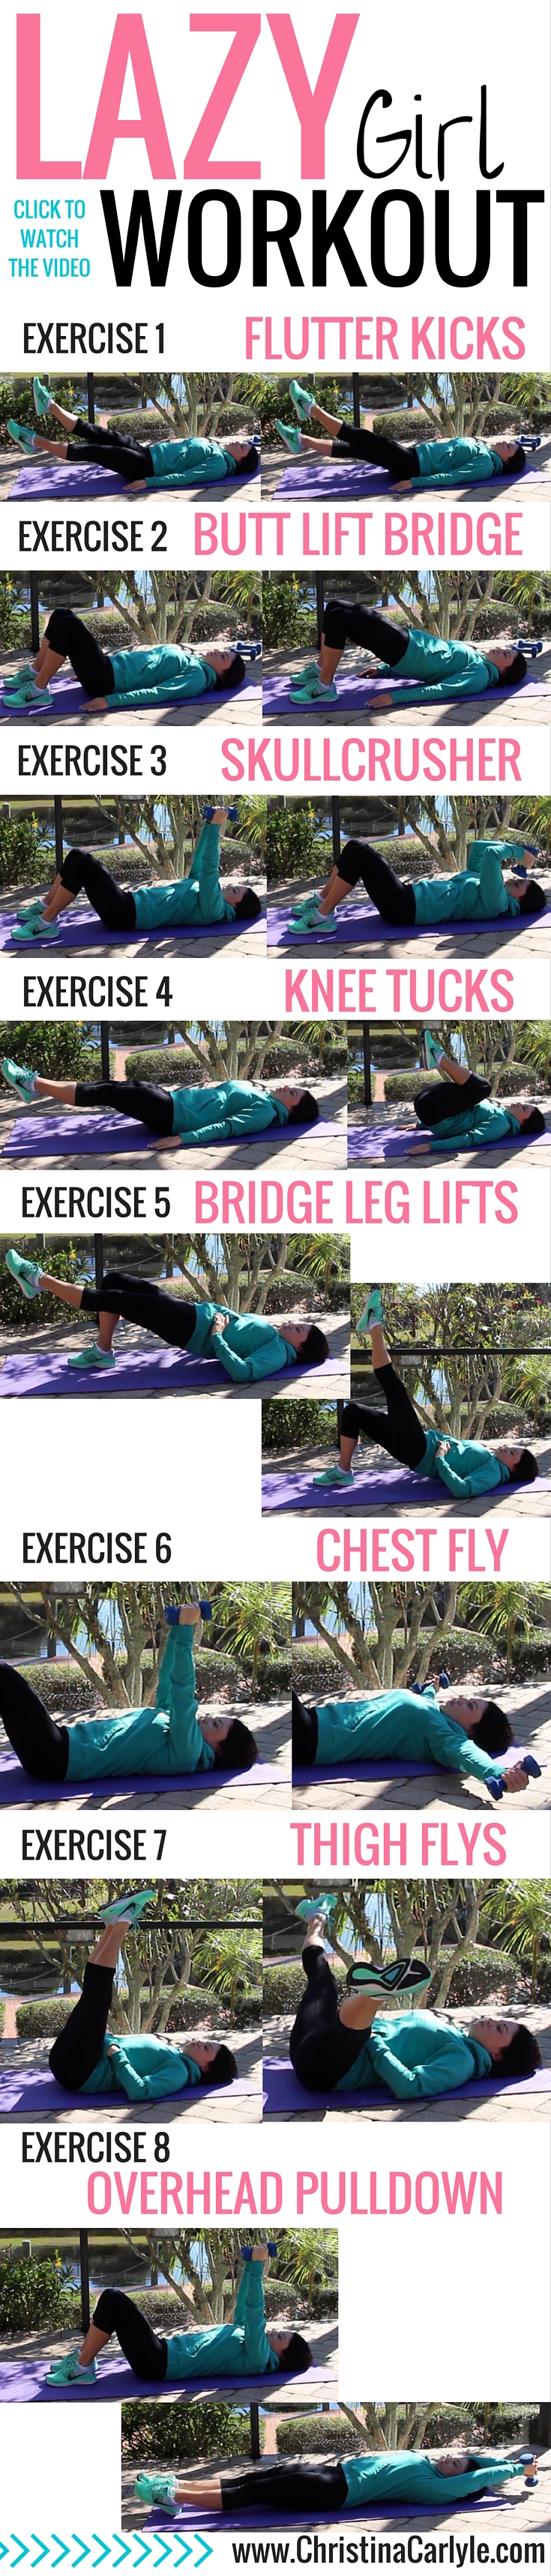 Lazy Girl workout | A fun Lazy Girl Workout for days when you're feeling lazy and don't want to workout. This lazy girl workout is perfect for busy women, beginners, and everyone that struggles with motivation to exercise. This lazy girl workout burns fat and you can do this lazy workout laying on your back.